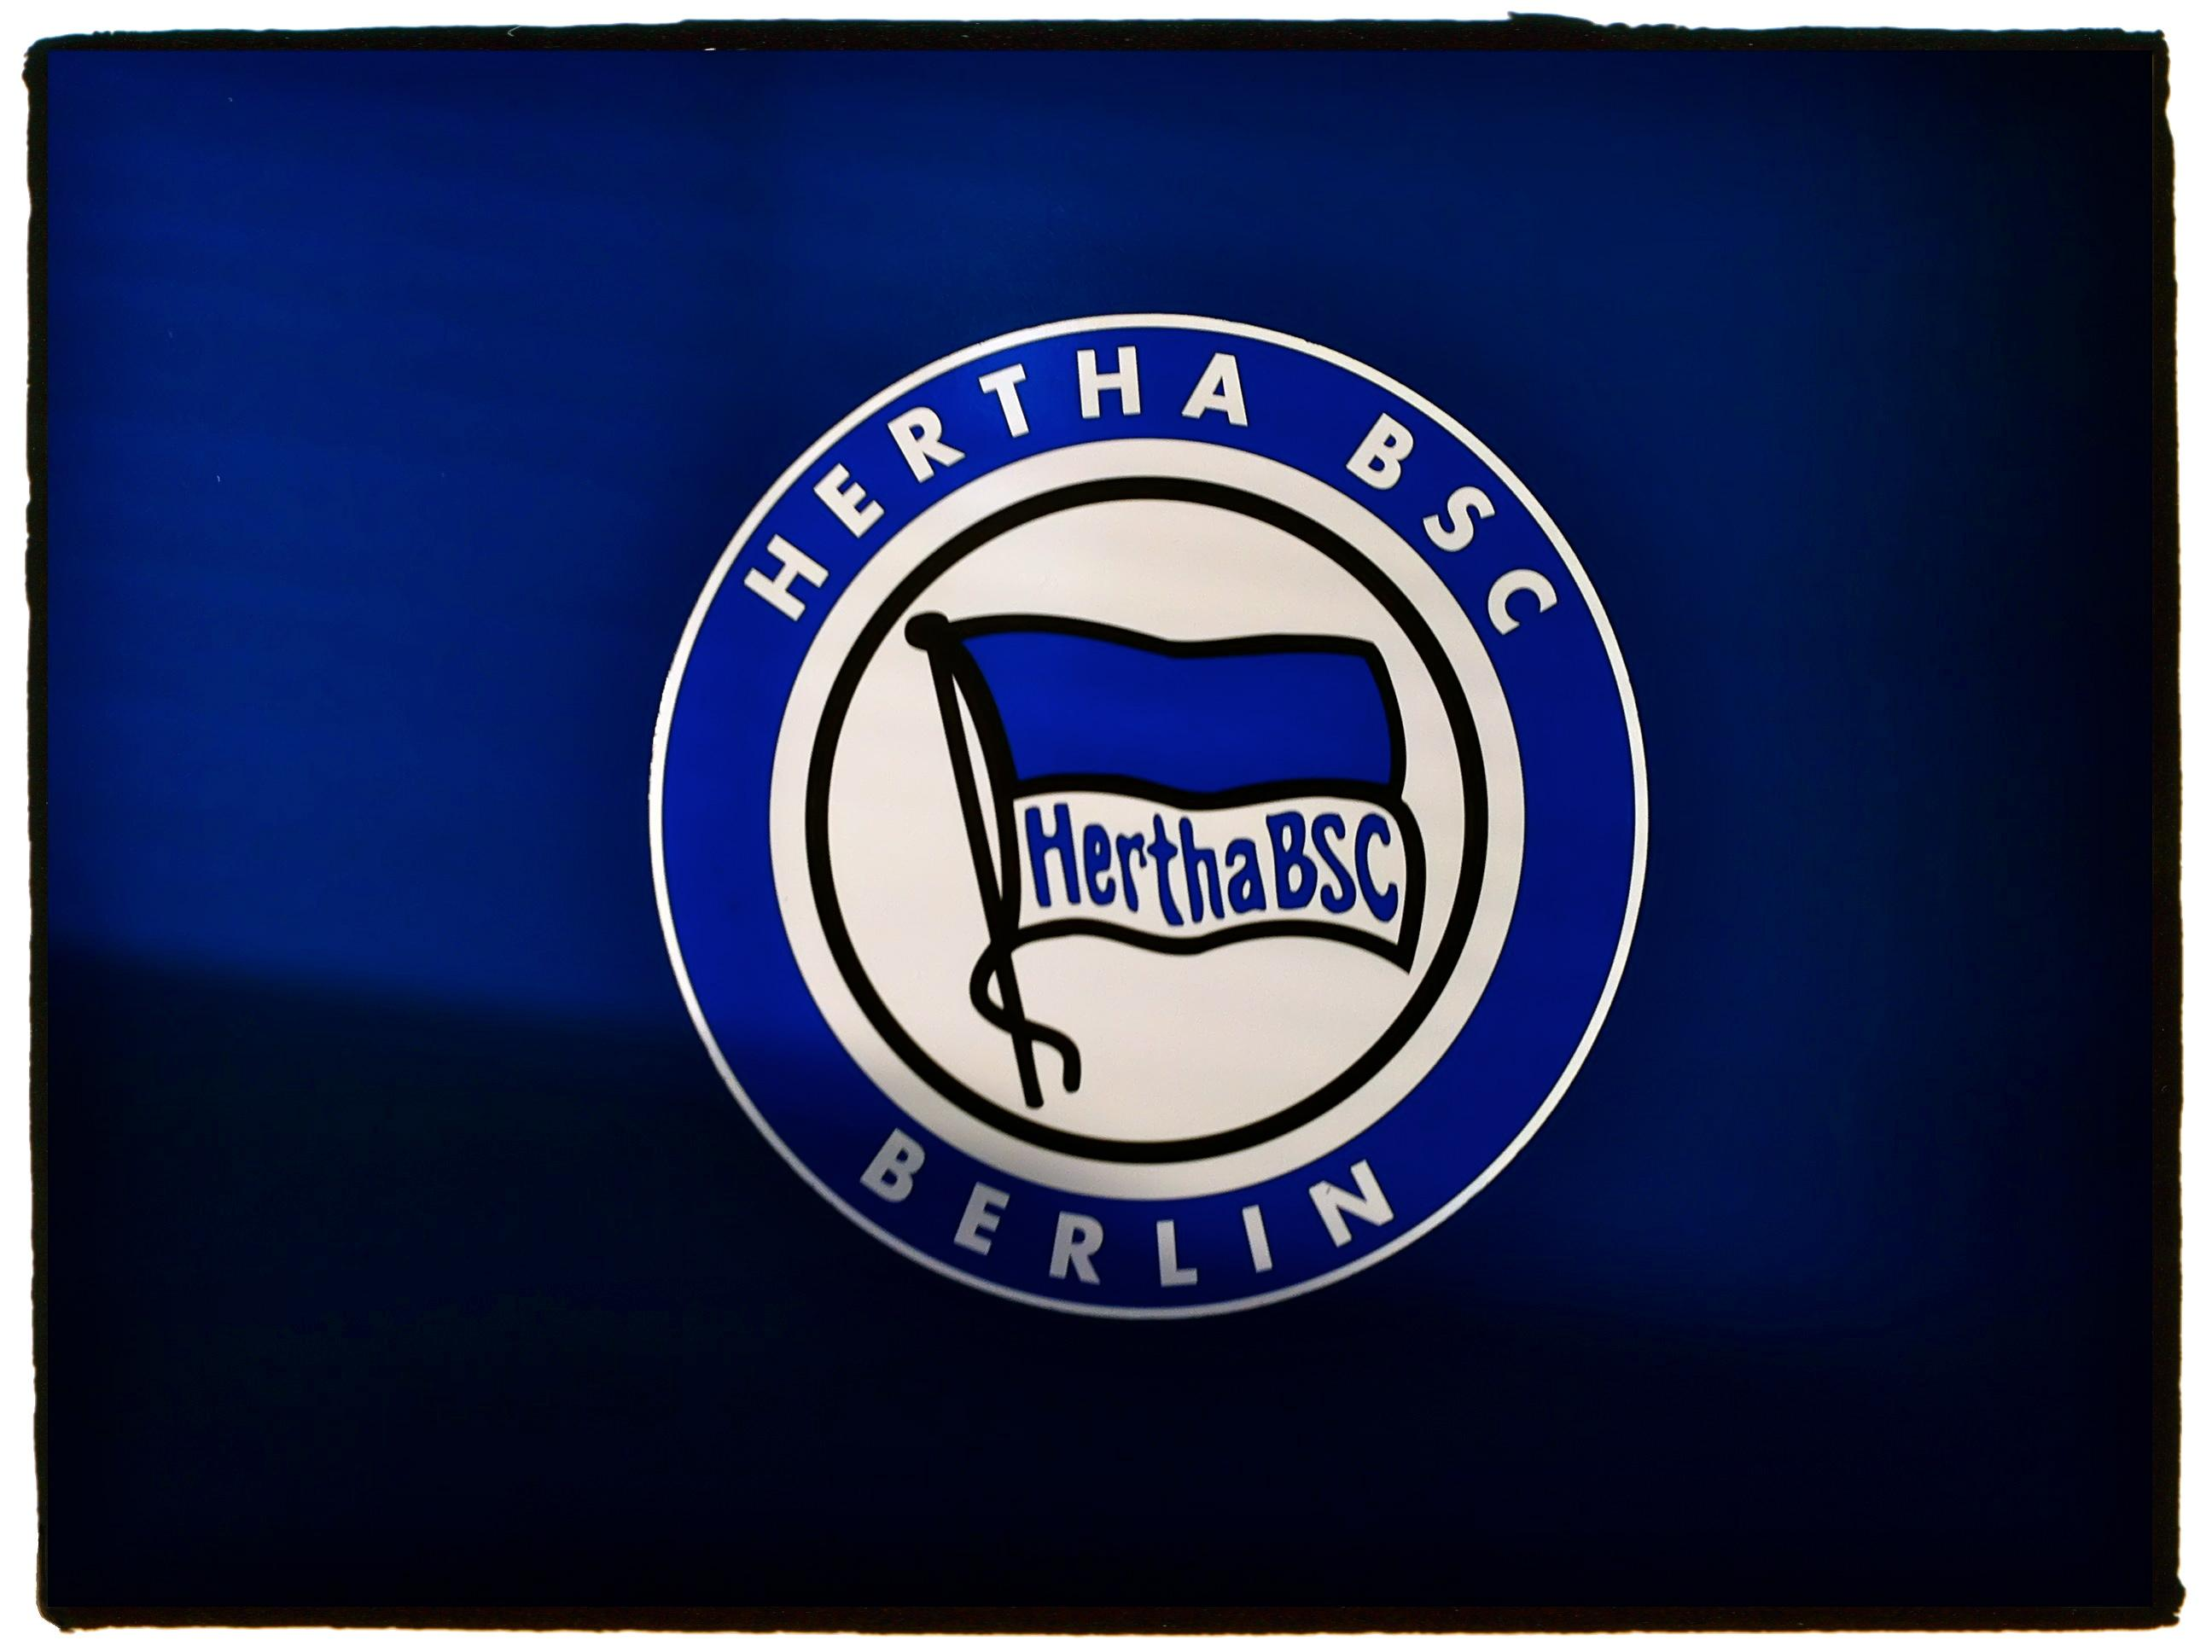 19+ Best HD Hertha Bsc Wallpapers